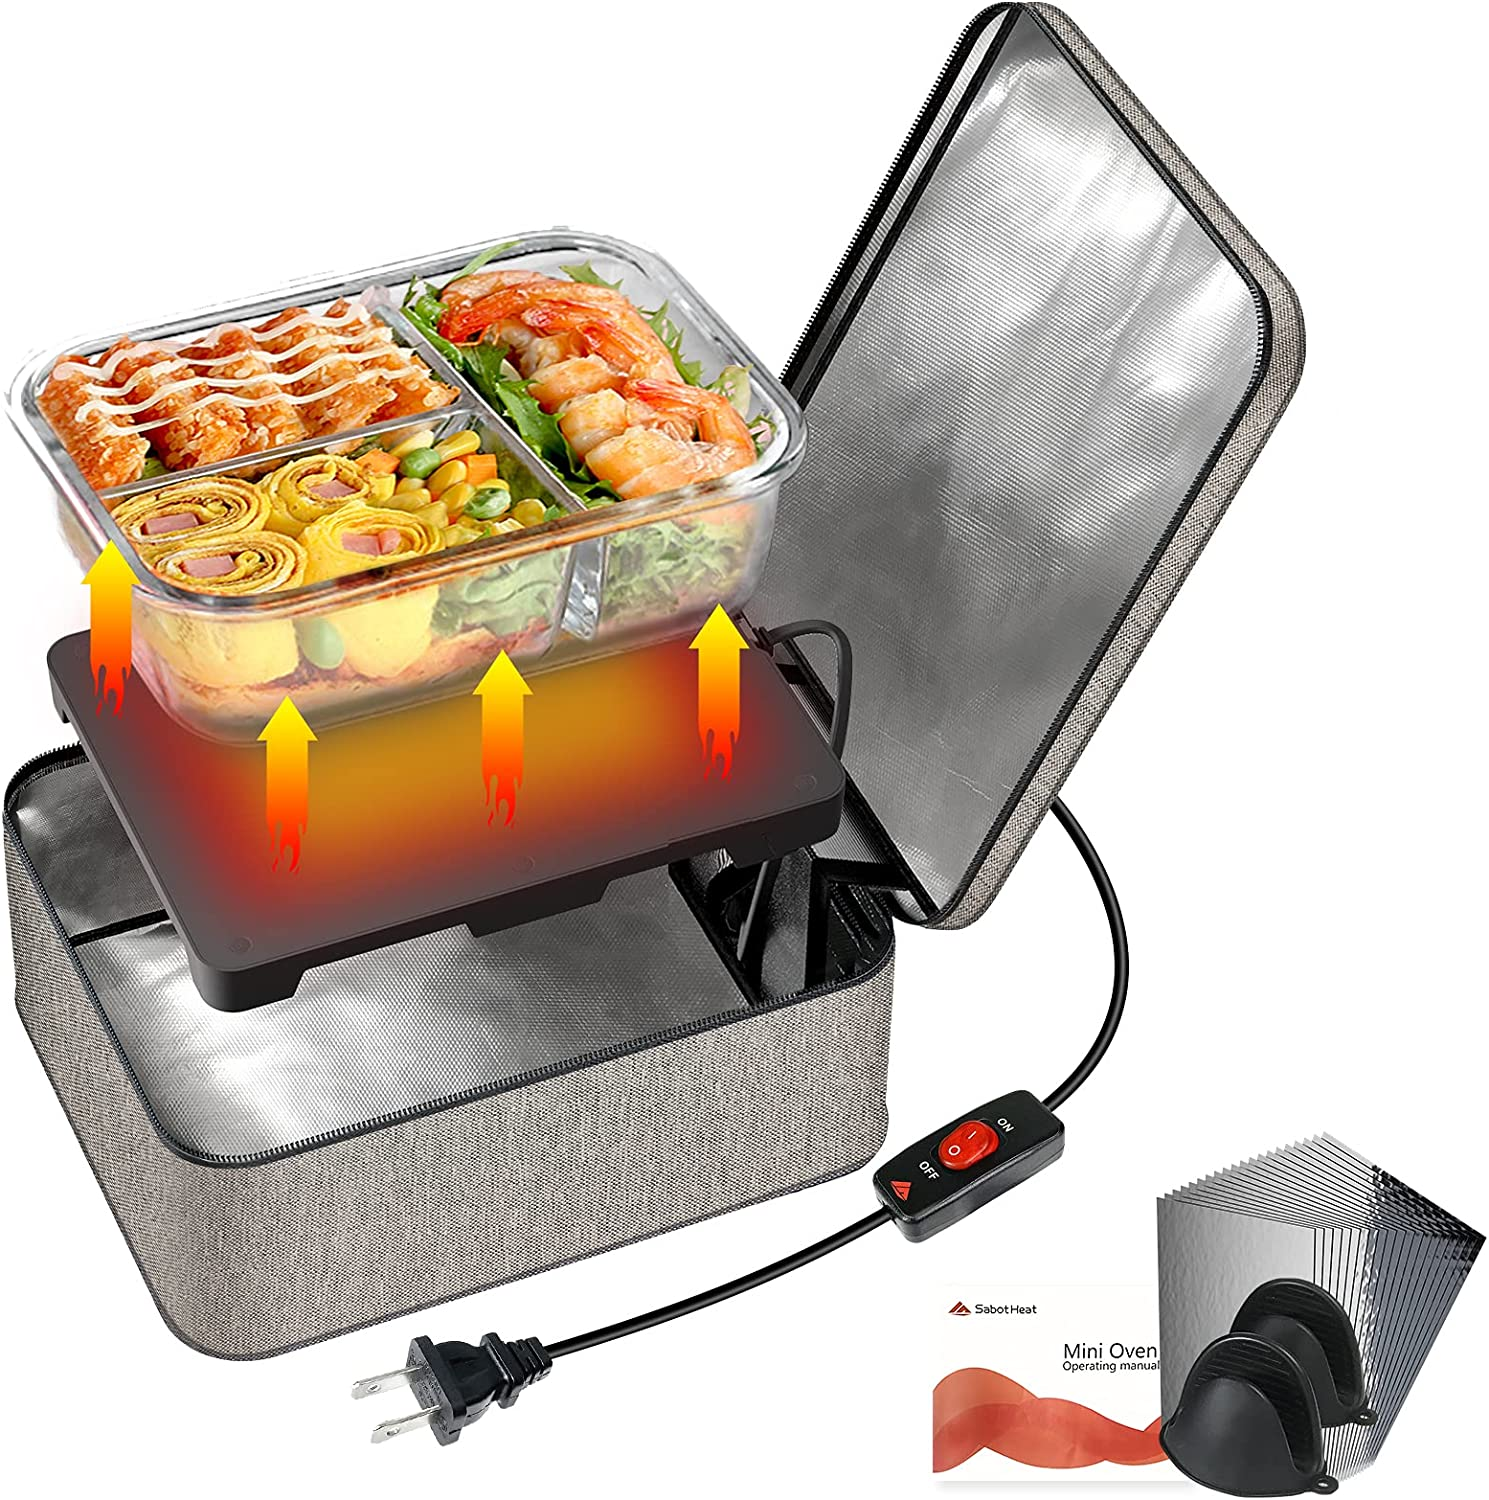 SabotHeat Mini Portable Oven - 120V 90W Fast Heating Portable Microwave with On/Off Switch for Reheating & Raw Food Cooking, Portable Food Warmer Lunch Box for Office, Travel, Home Kitchen(Grey)